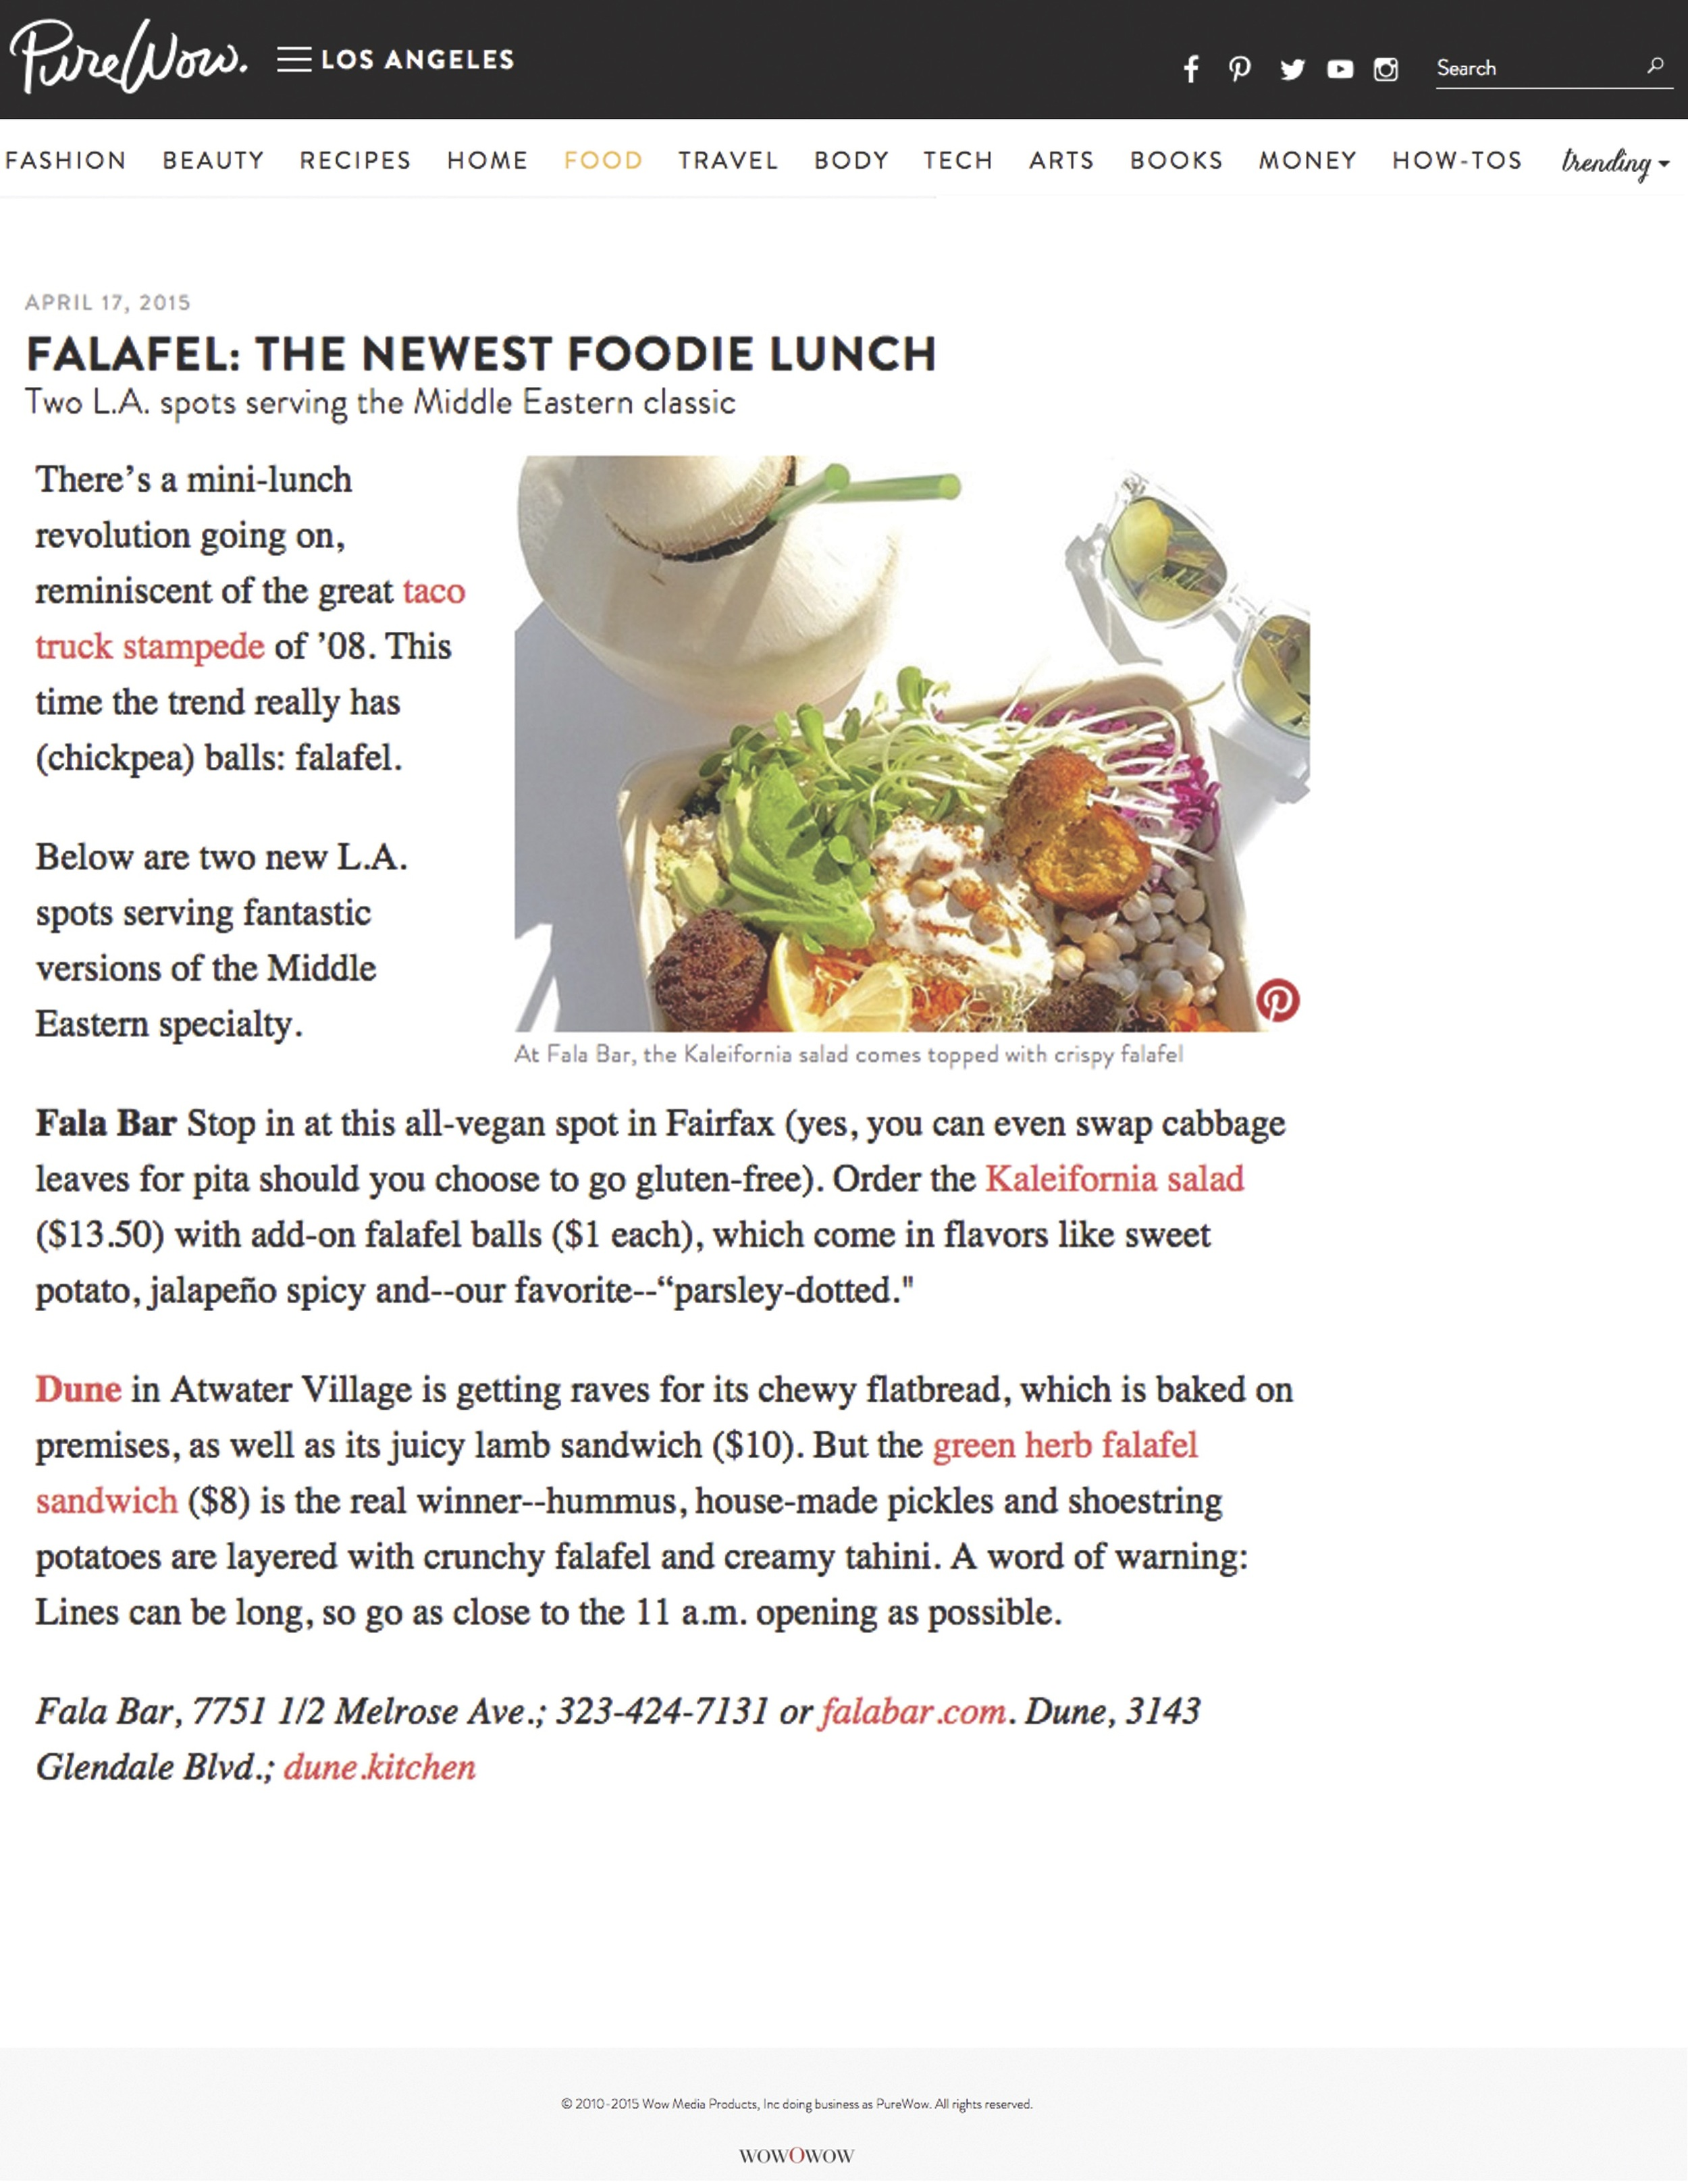 Report about Fala Bar / Purewow